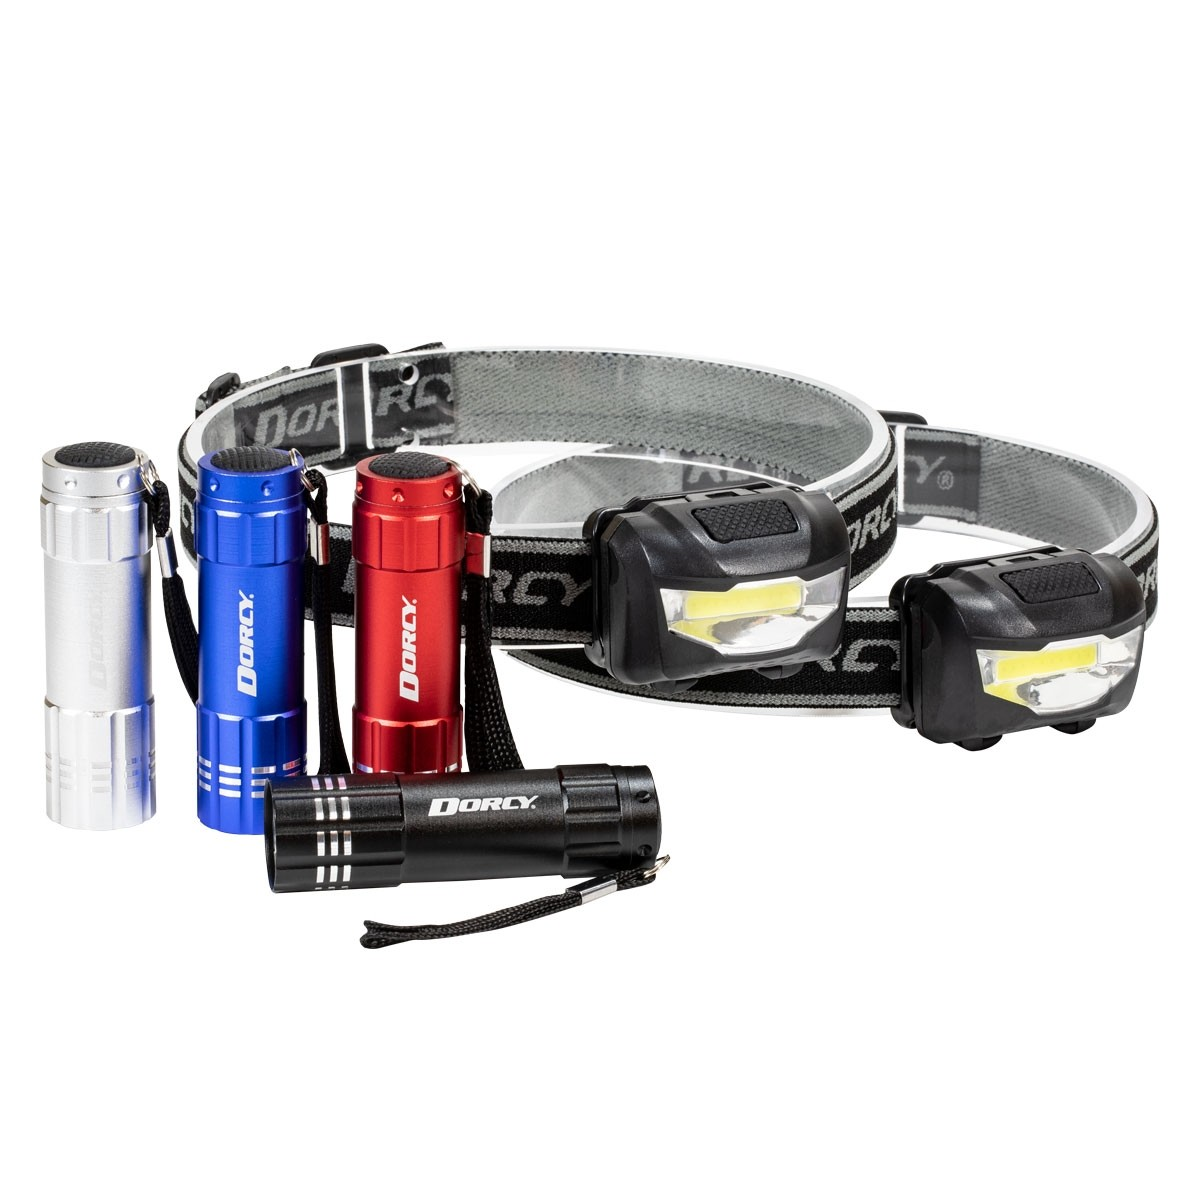 COB Flashlights and Headlamps Combo